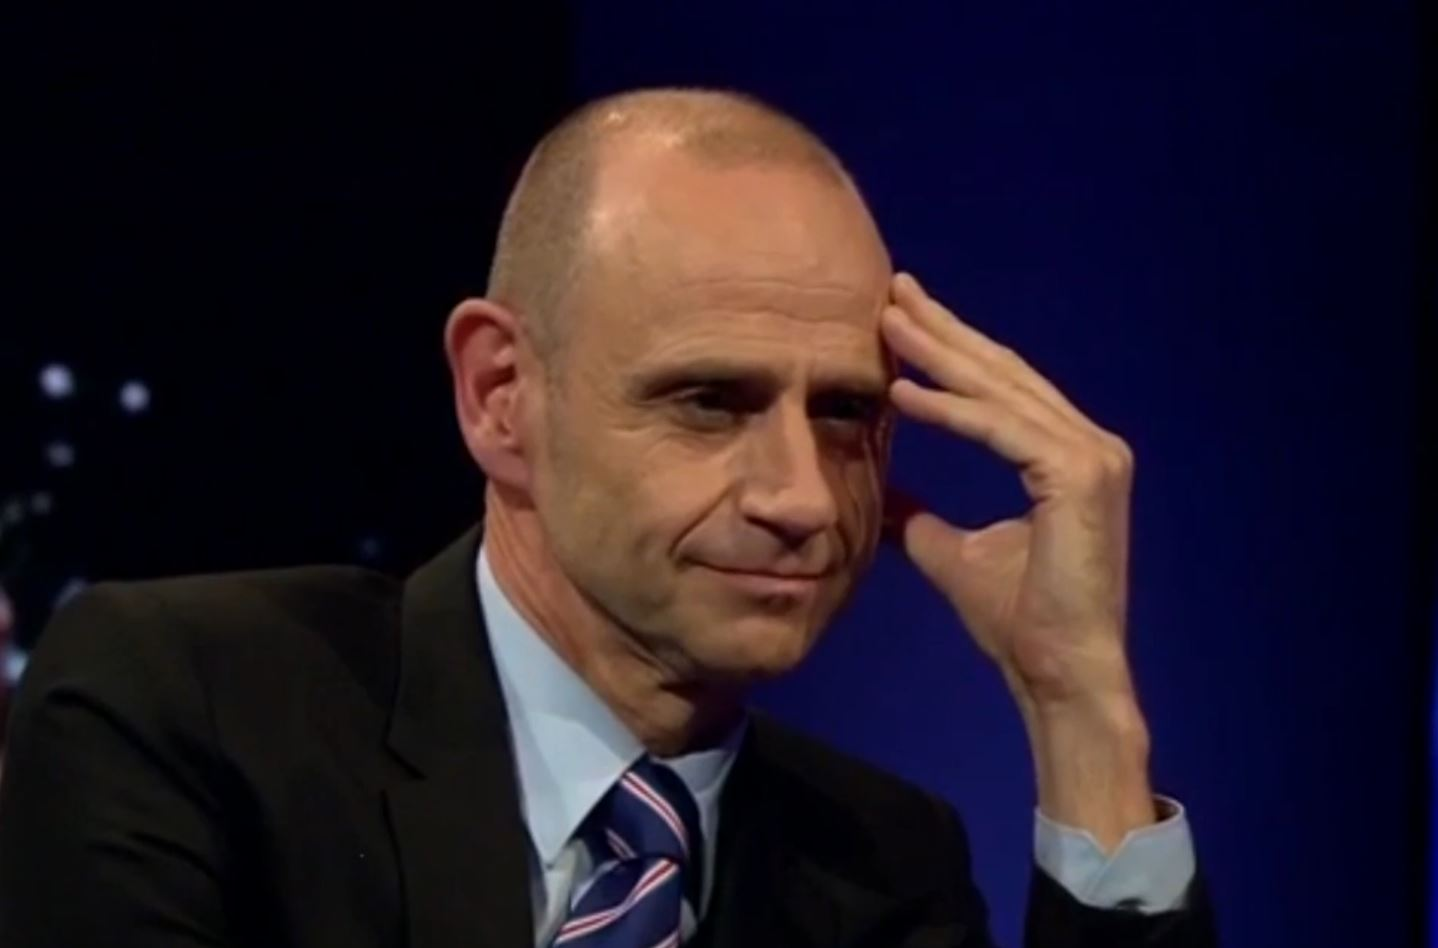 Evan Davis appeared to become frustrated (Picture: BBC Newsnight)